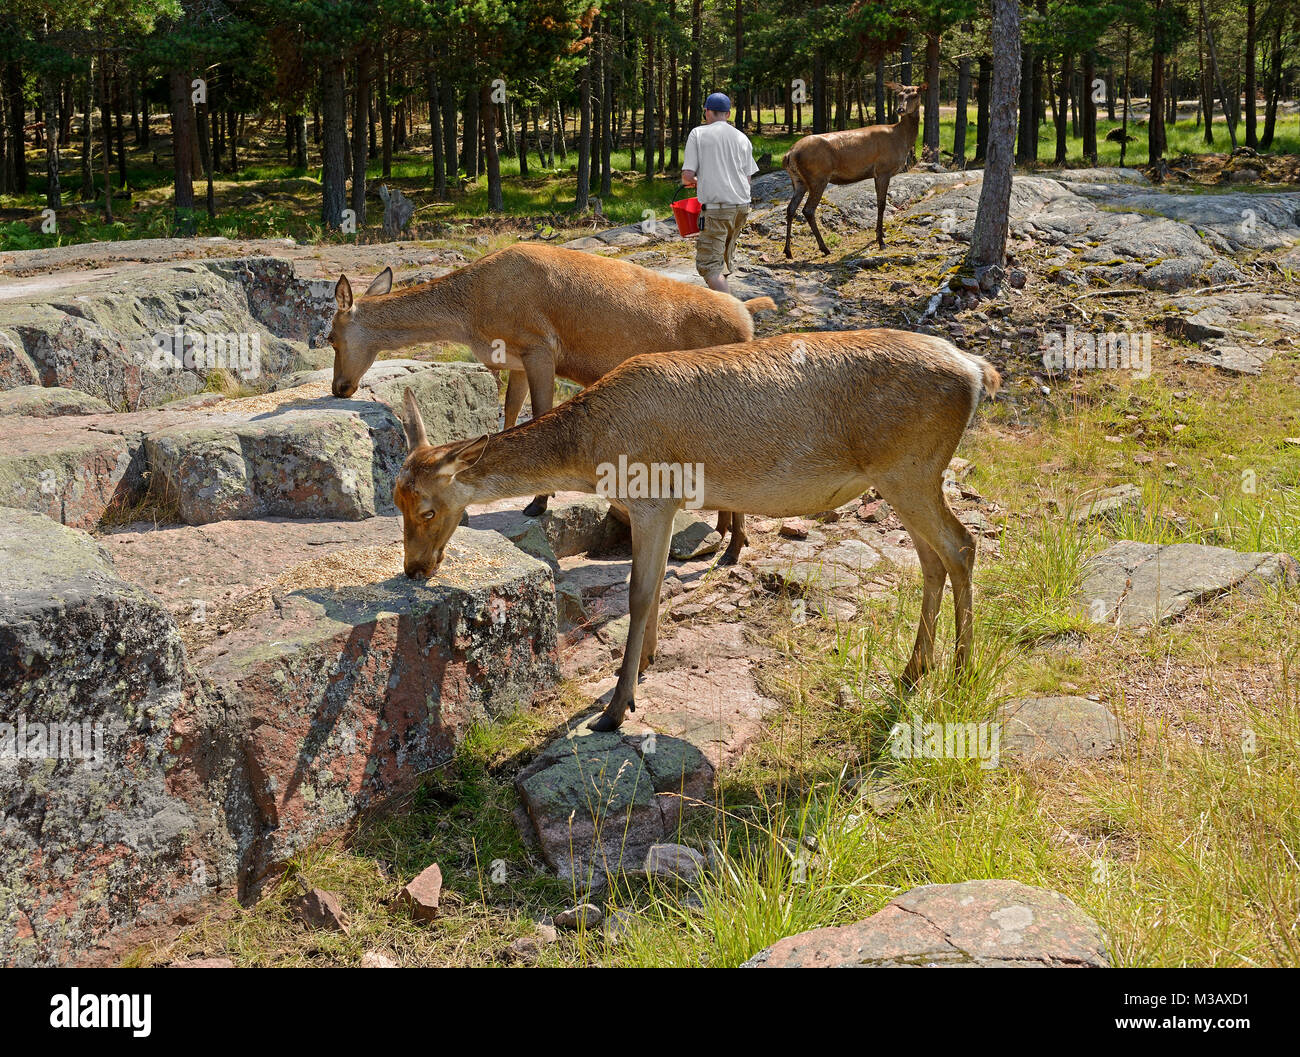 Red deer (Cervus elaphus)  eat grain, which man feeds them in forest - Stock Image